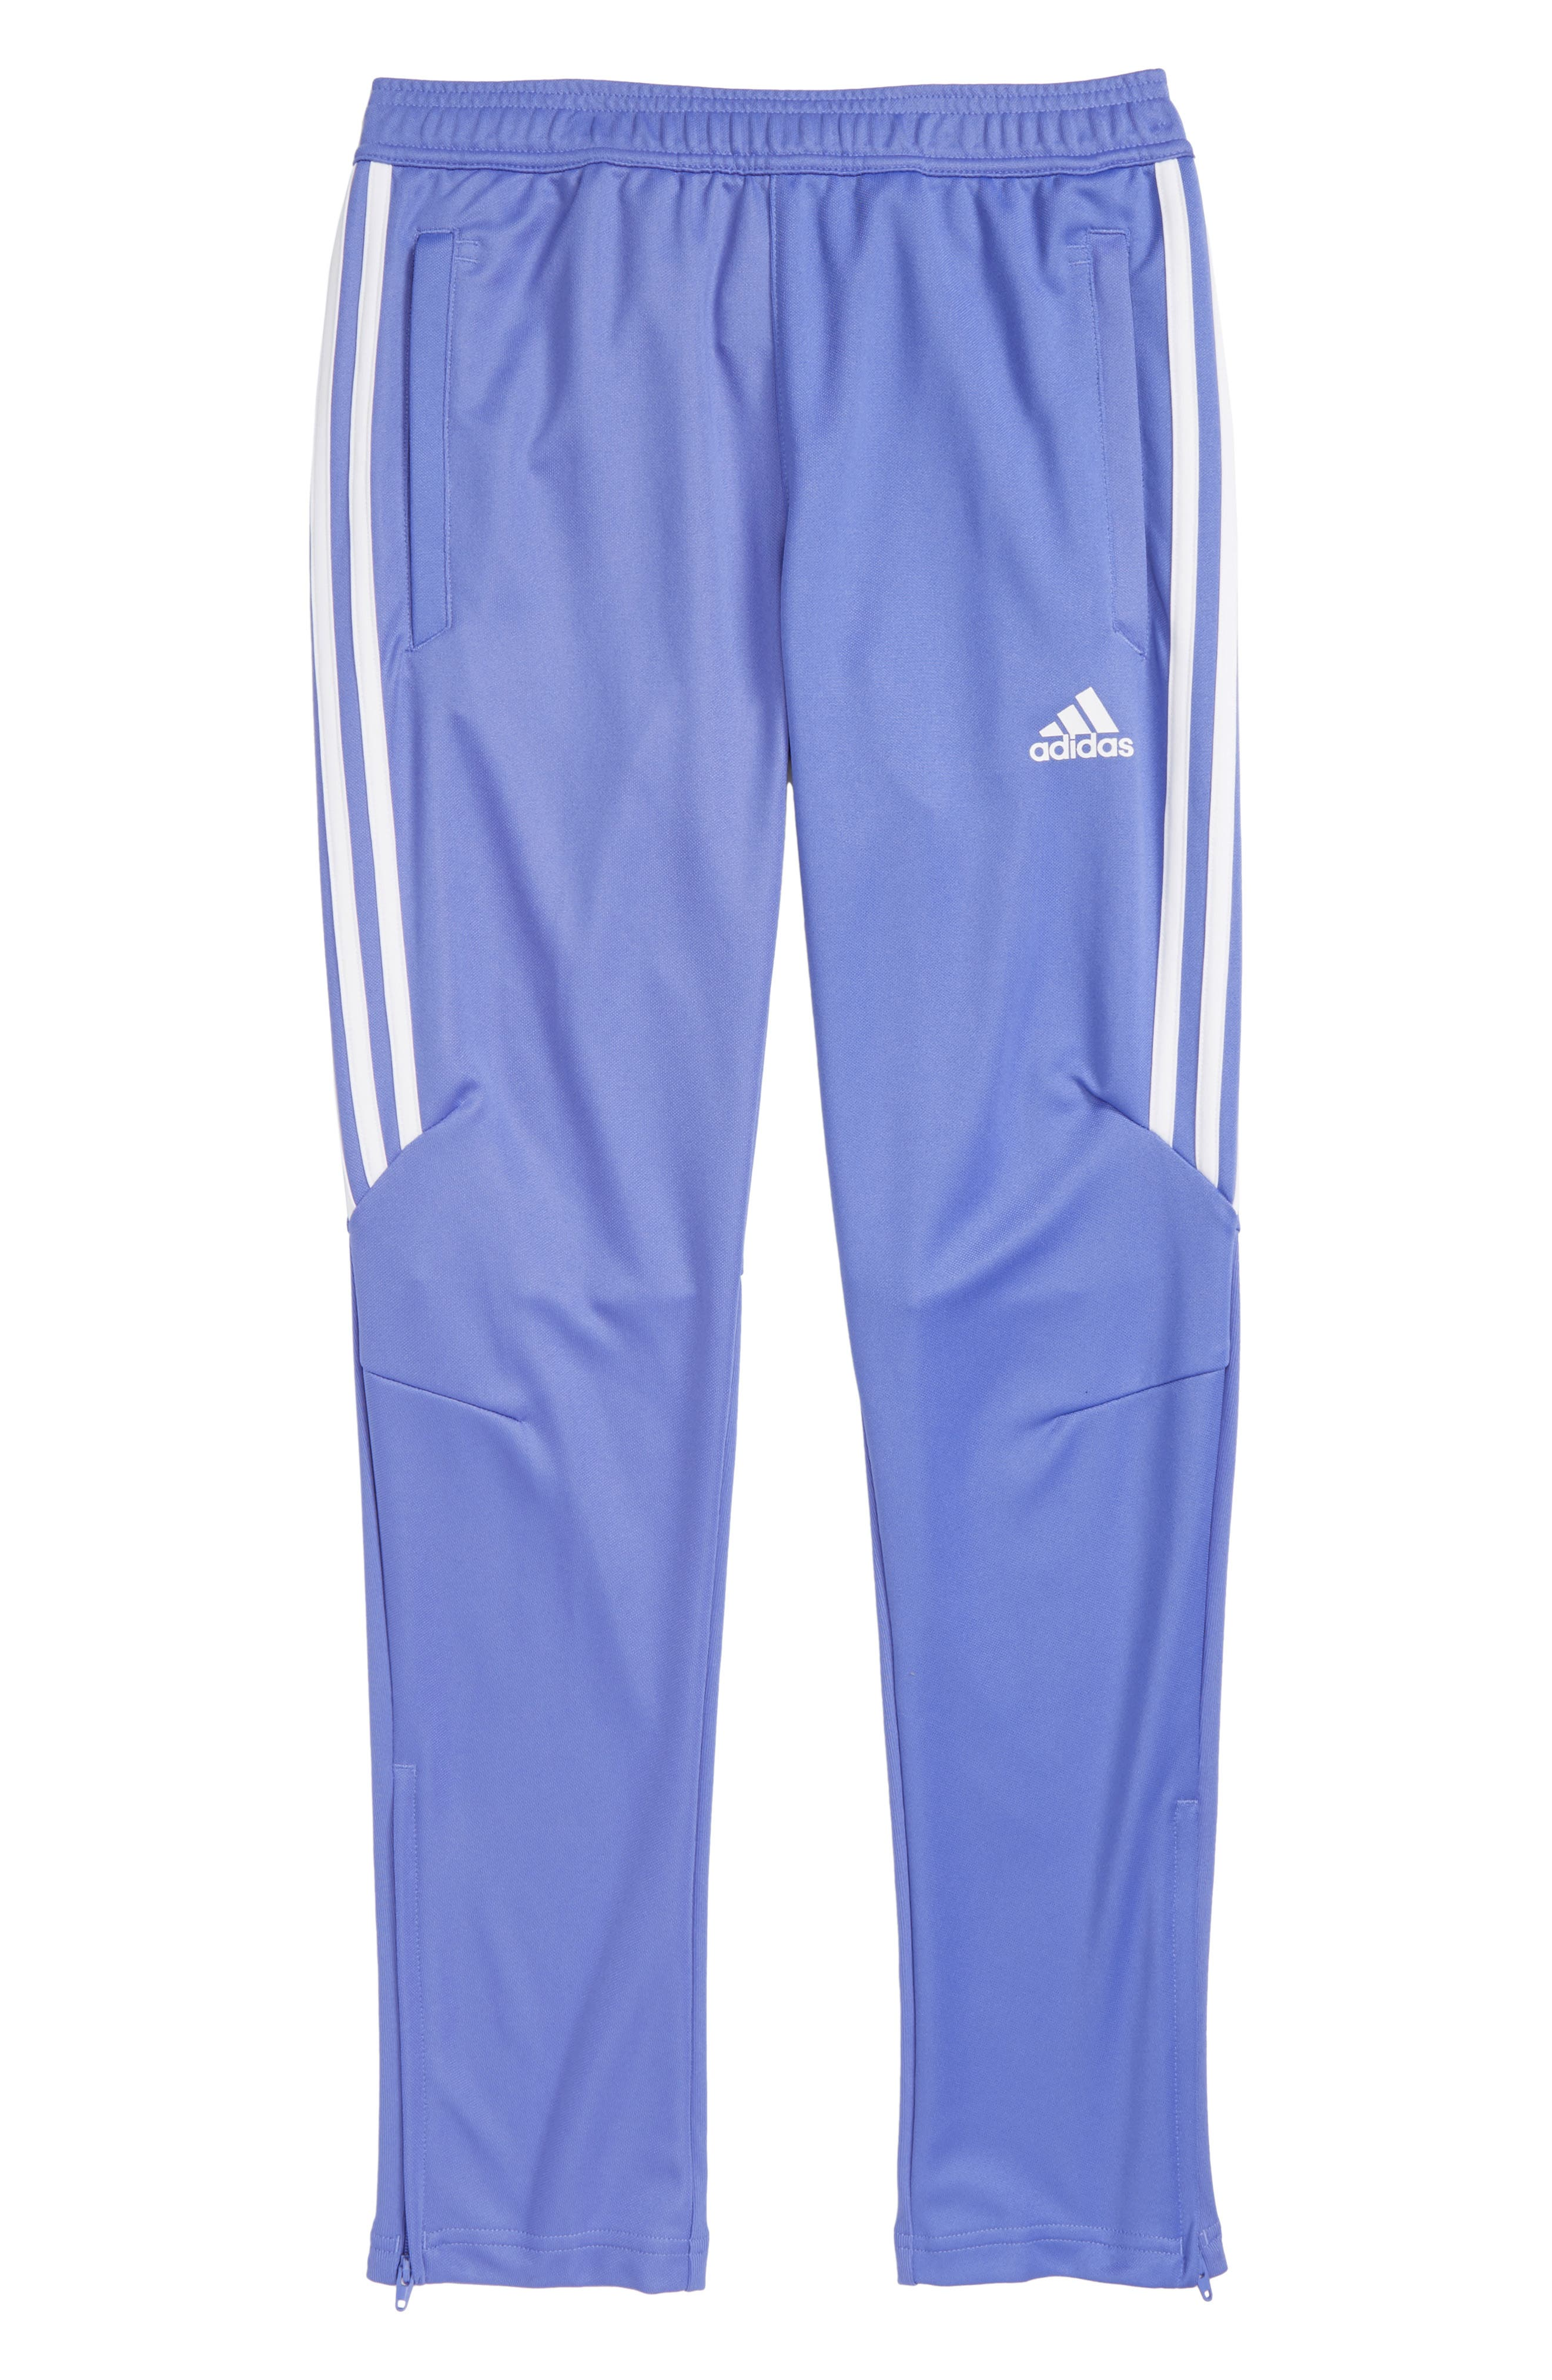 adidas Tiro Climacool<sup>®</sup> Pants,                         Main,                         color, REAL LILAC / WHITE